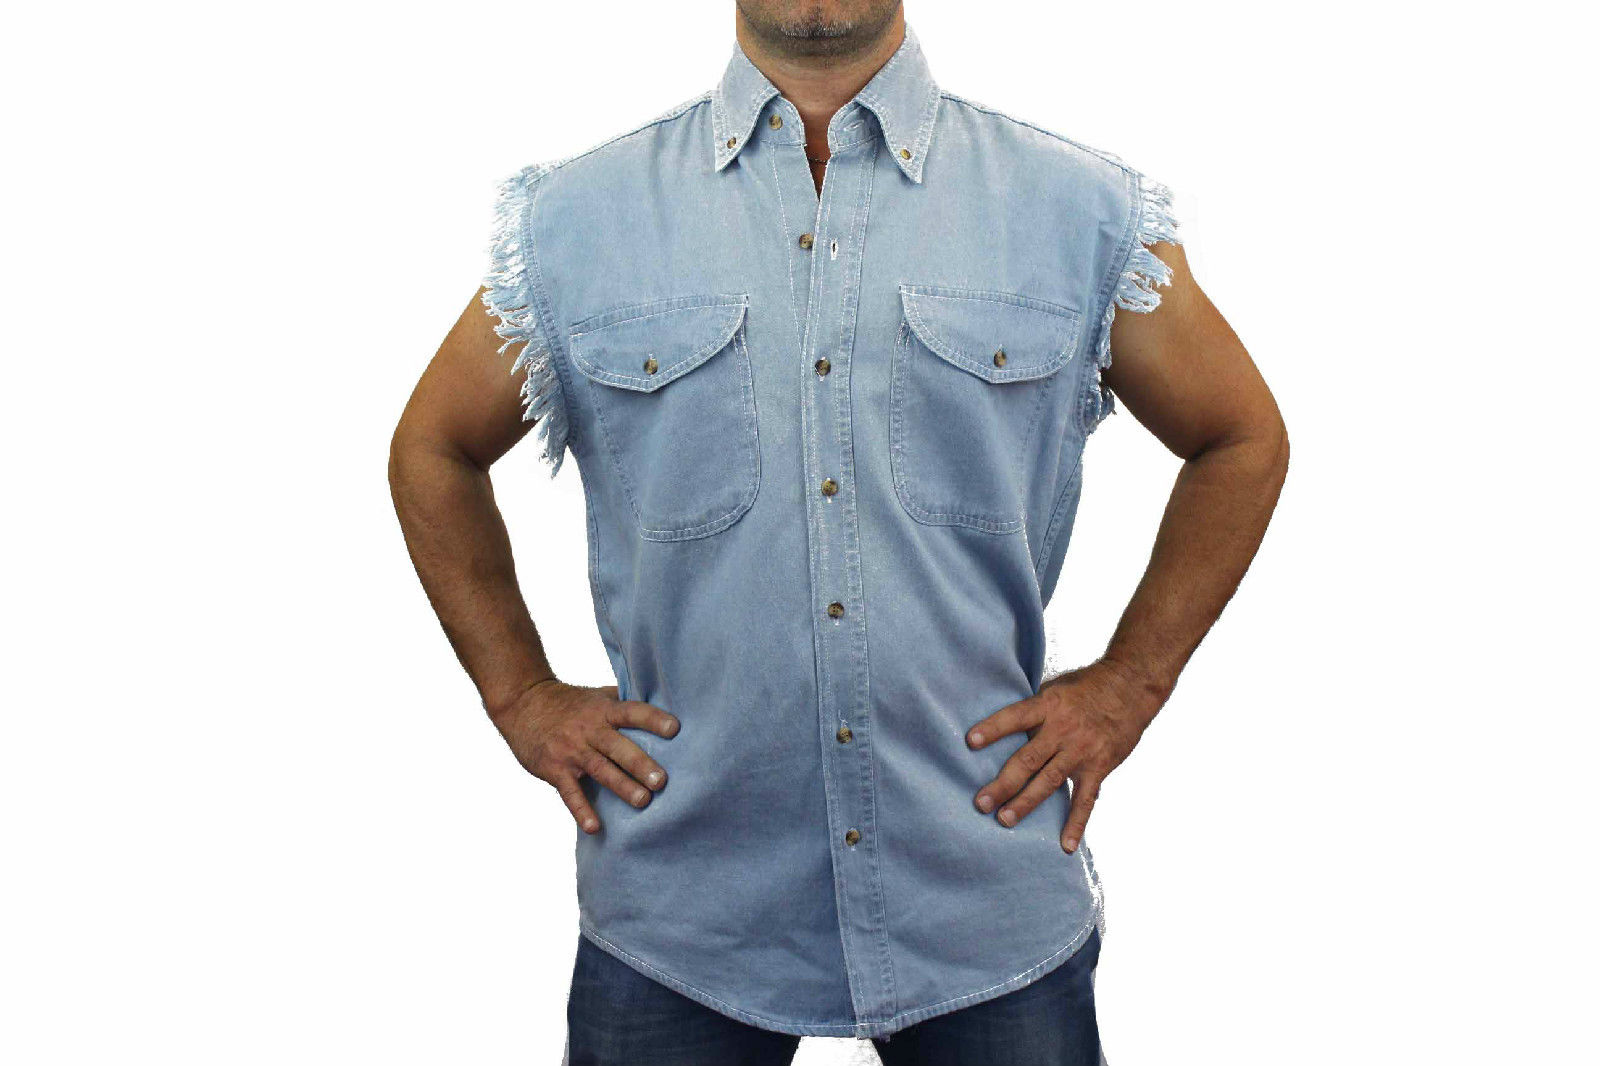 MEN'S SLEEVELESS DENIM SHIRT Outlaw Hot Rod Garage VINTAGE ...